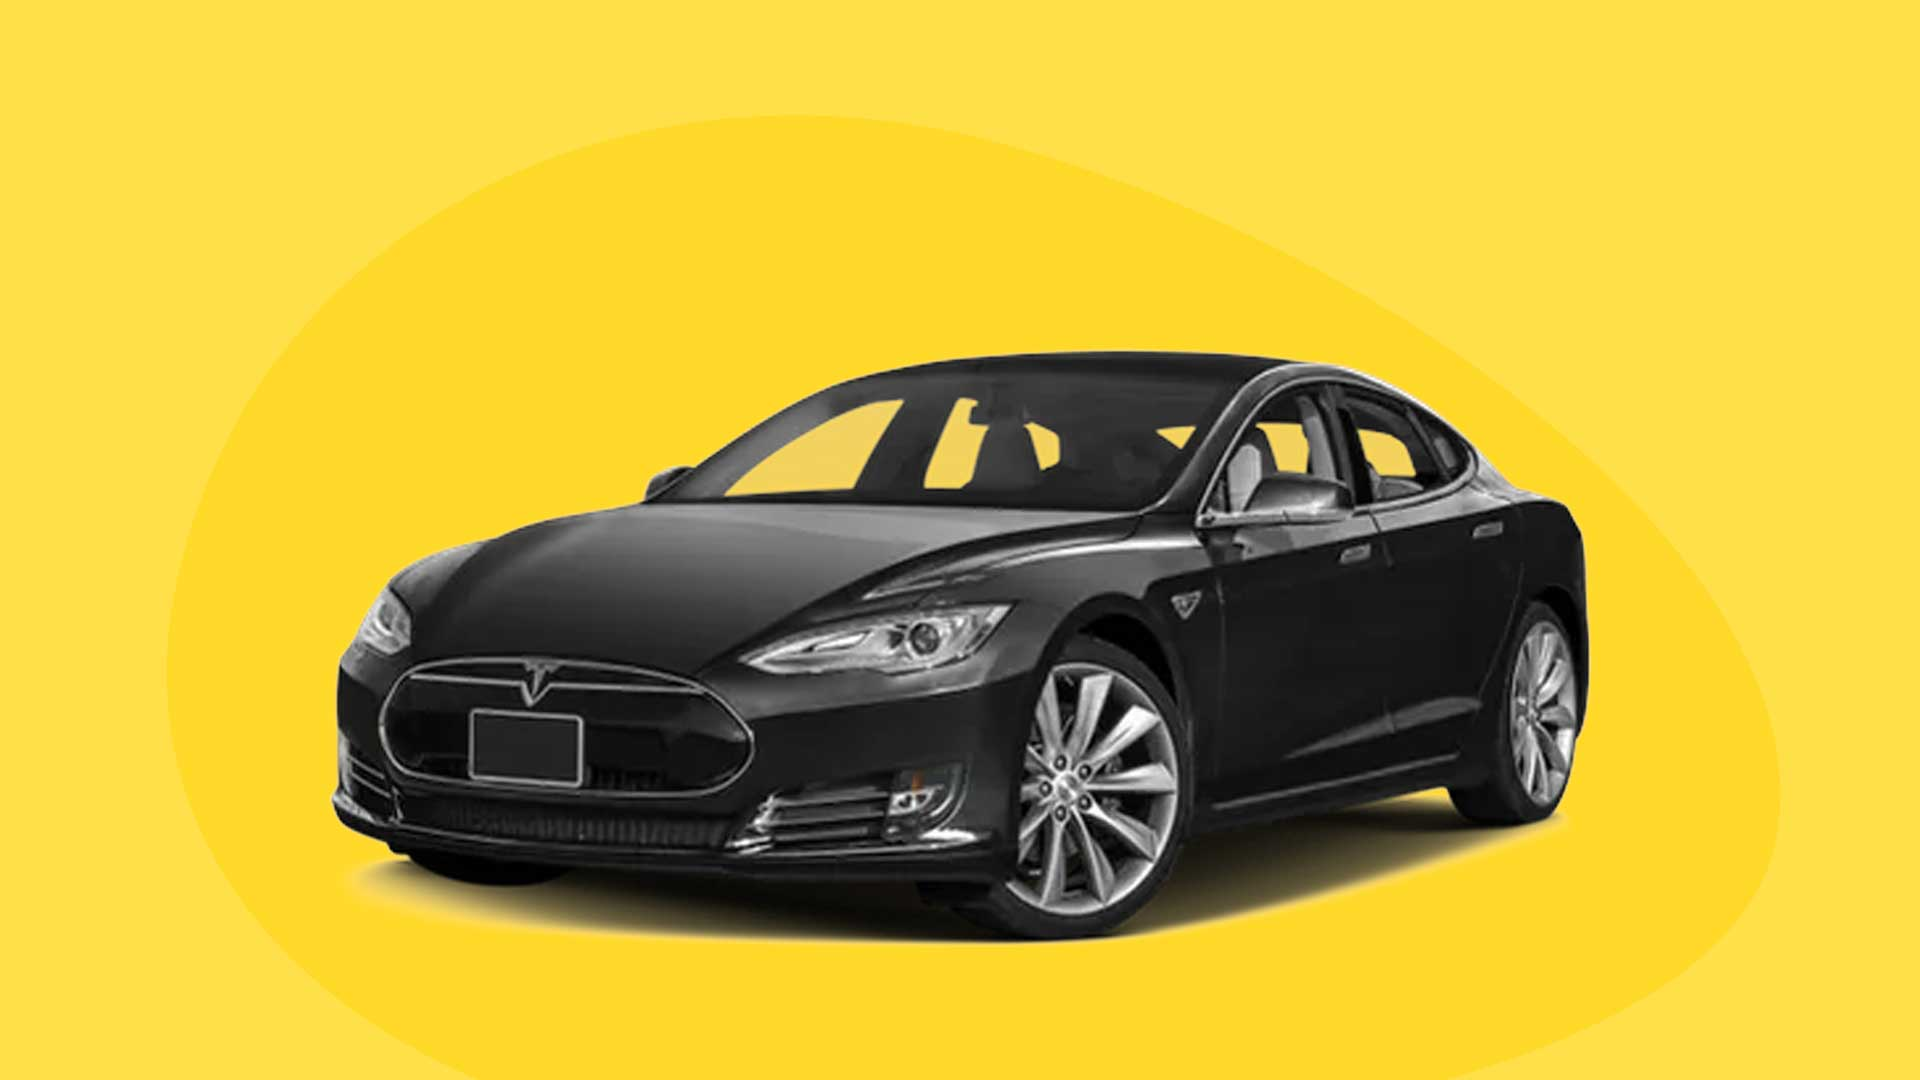 Tesla - image contains a Tesla black car over a yellow background